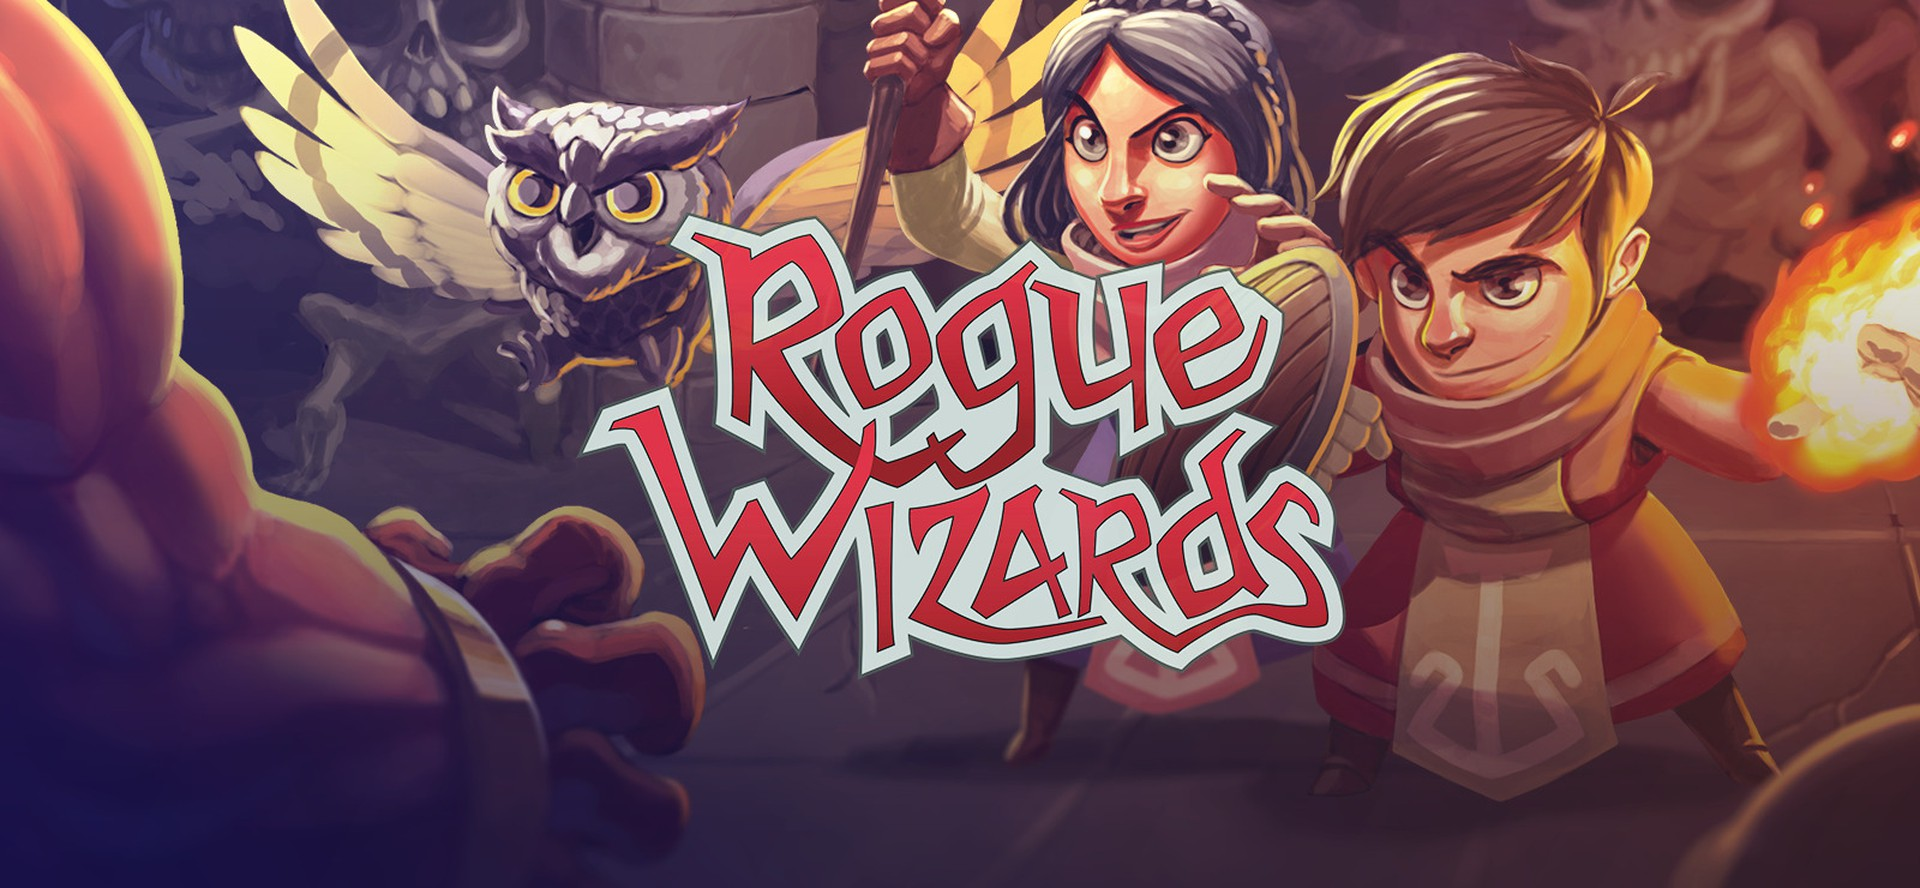 Rogue Wizards Video